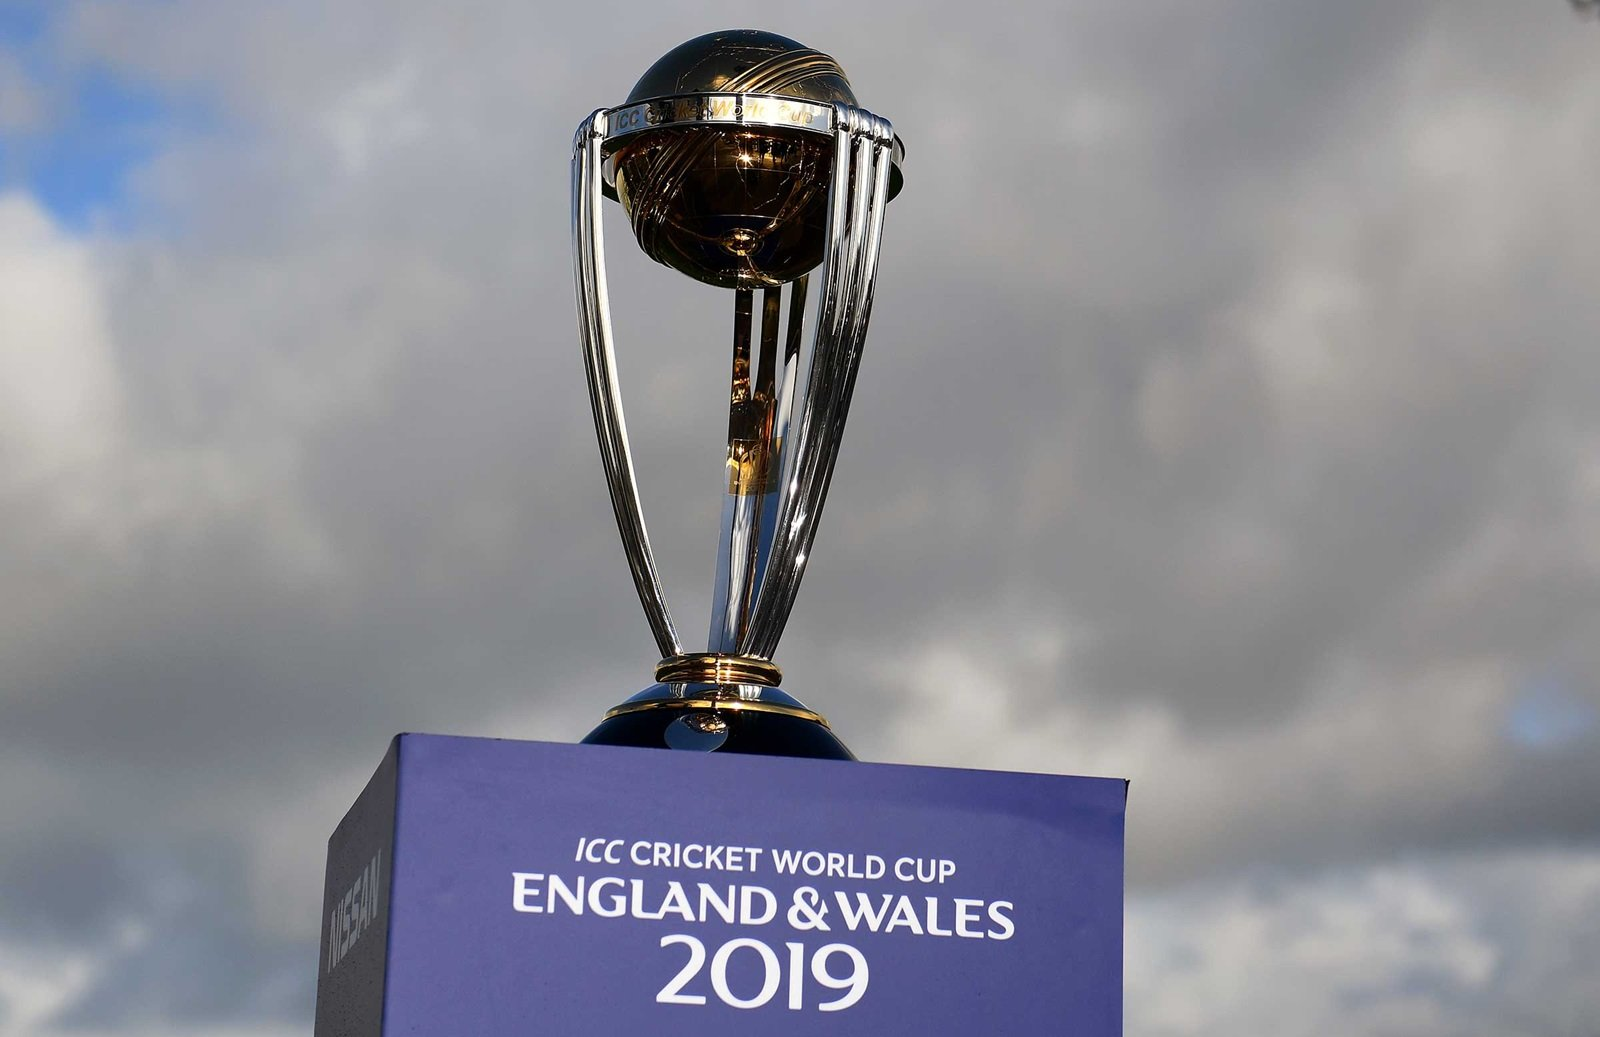 ICC World Cup 2019 Kreedon cricket world cup prize money